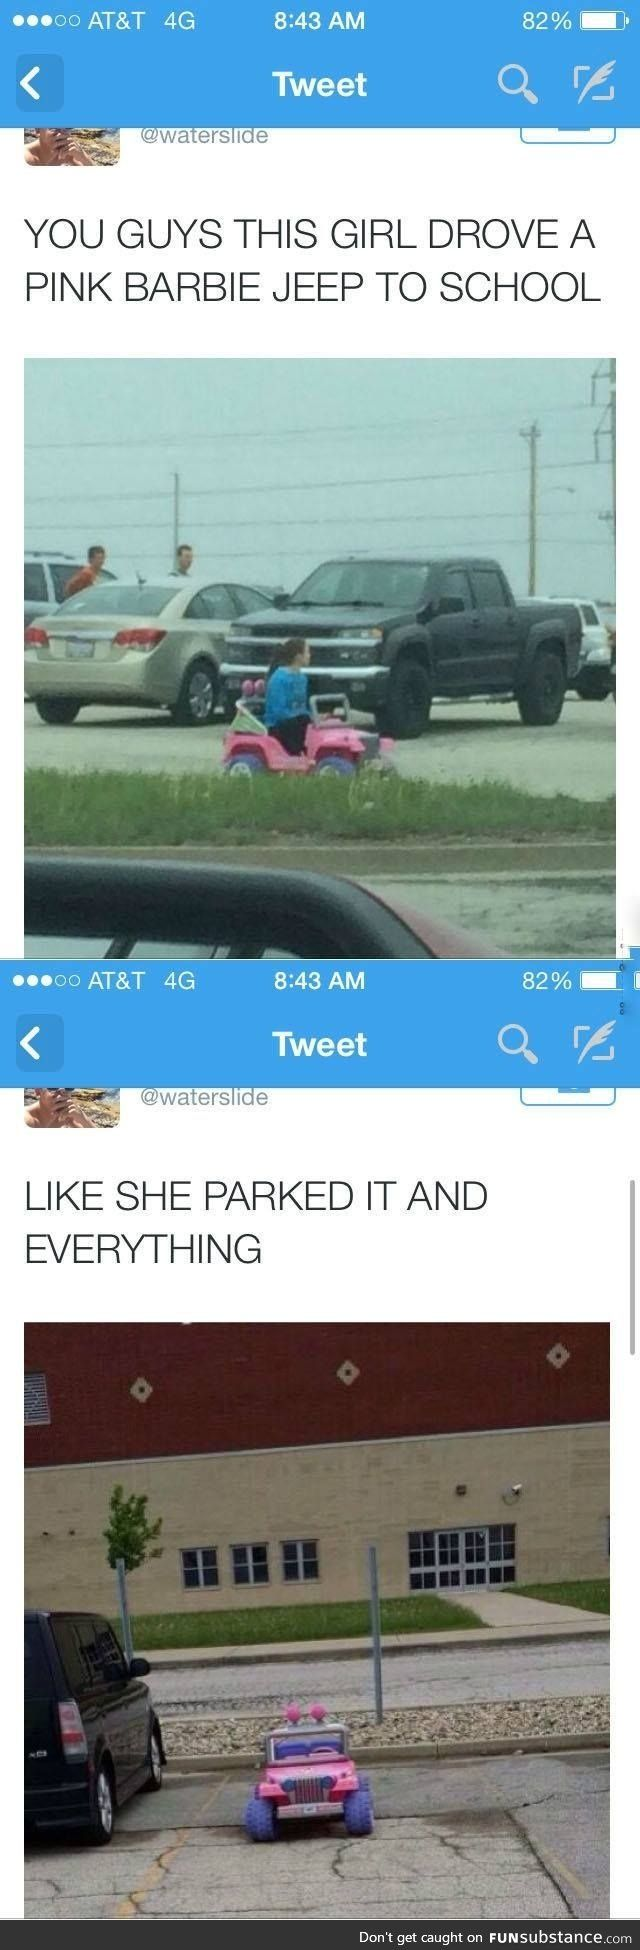 I can't xD<<<<I can't even drive across my yard in a Barbie jeep! I have bruises from crashing into my mailbox....